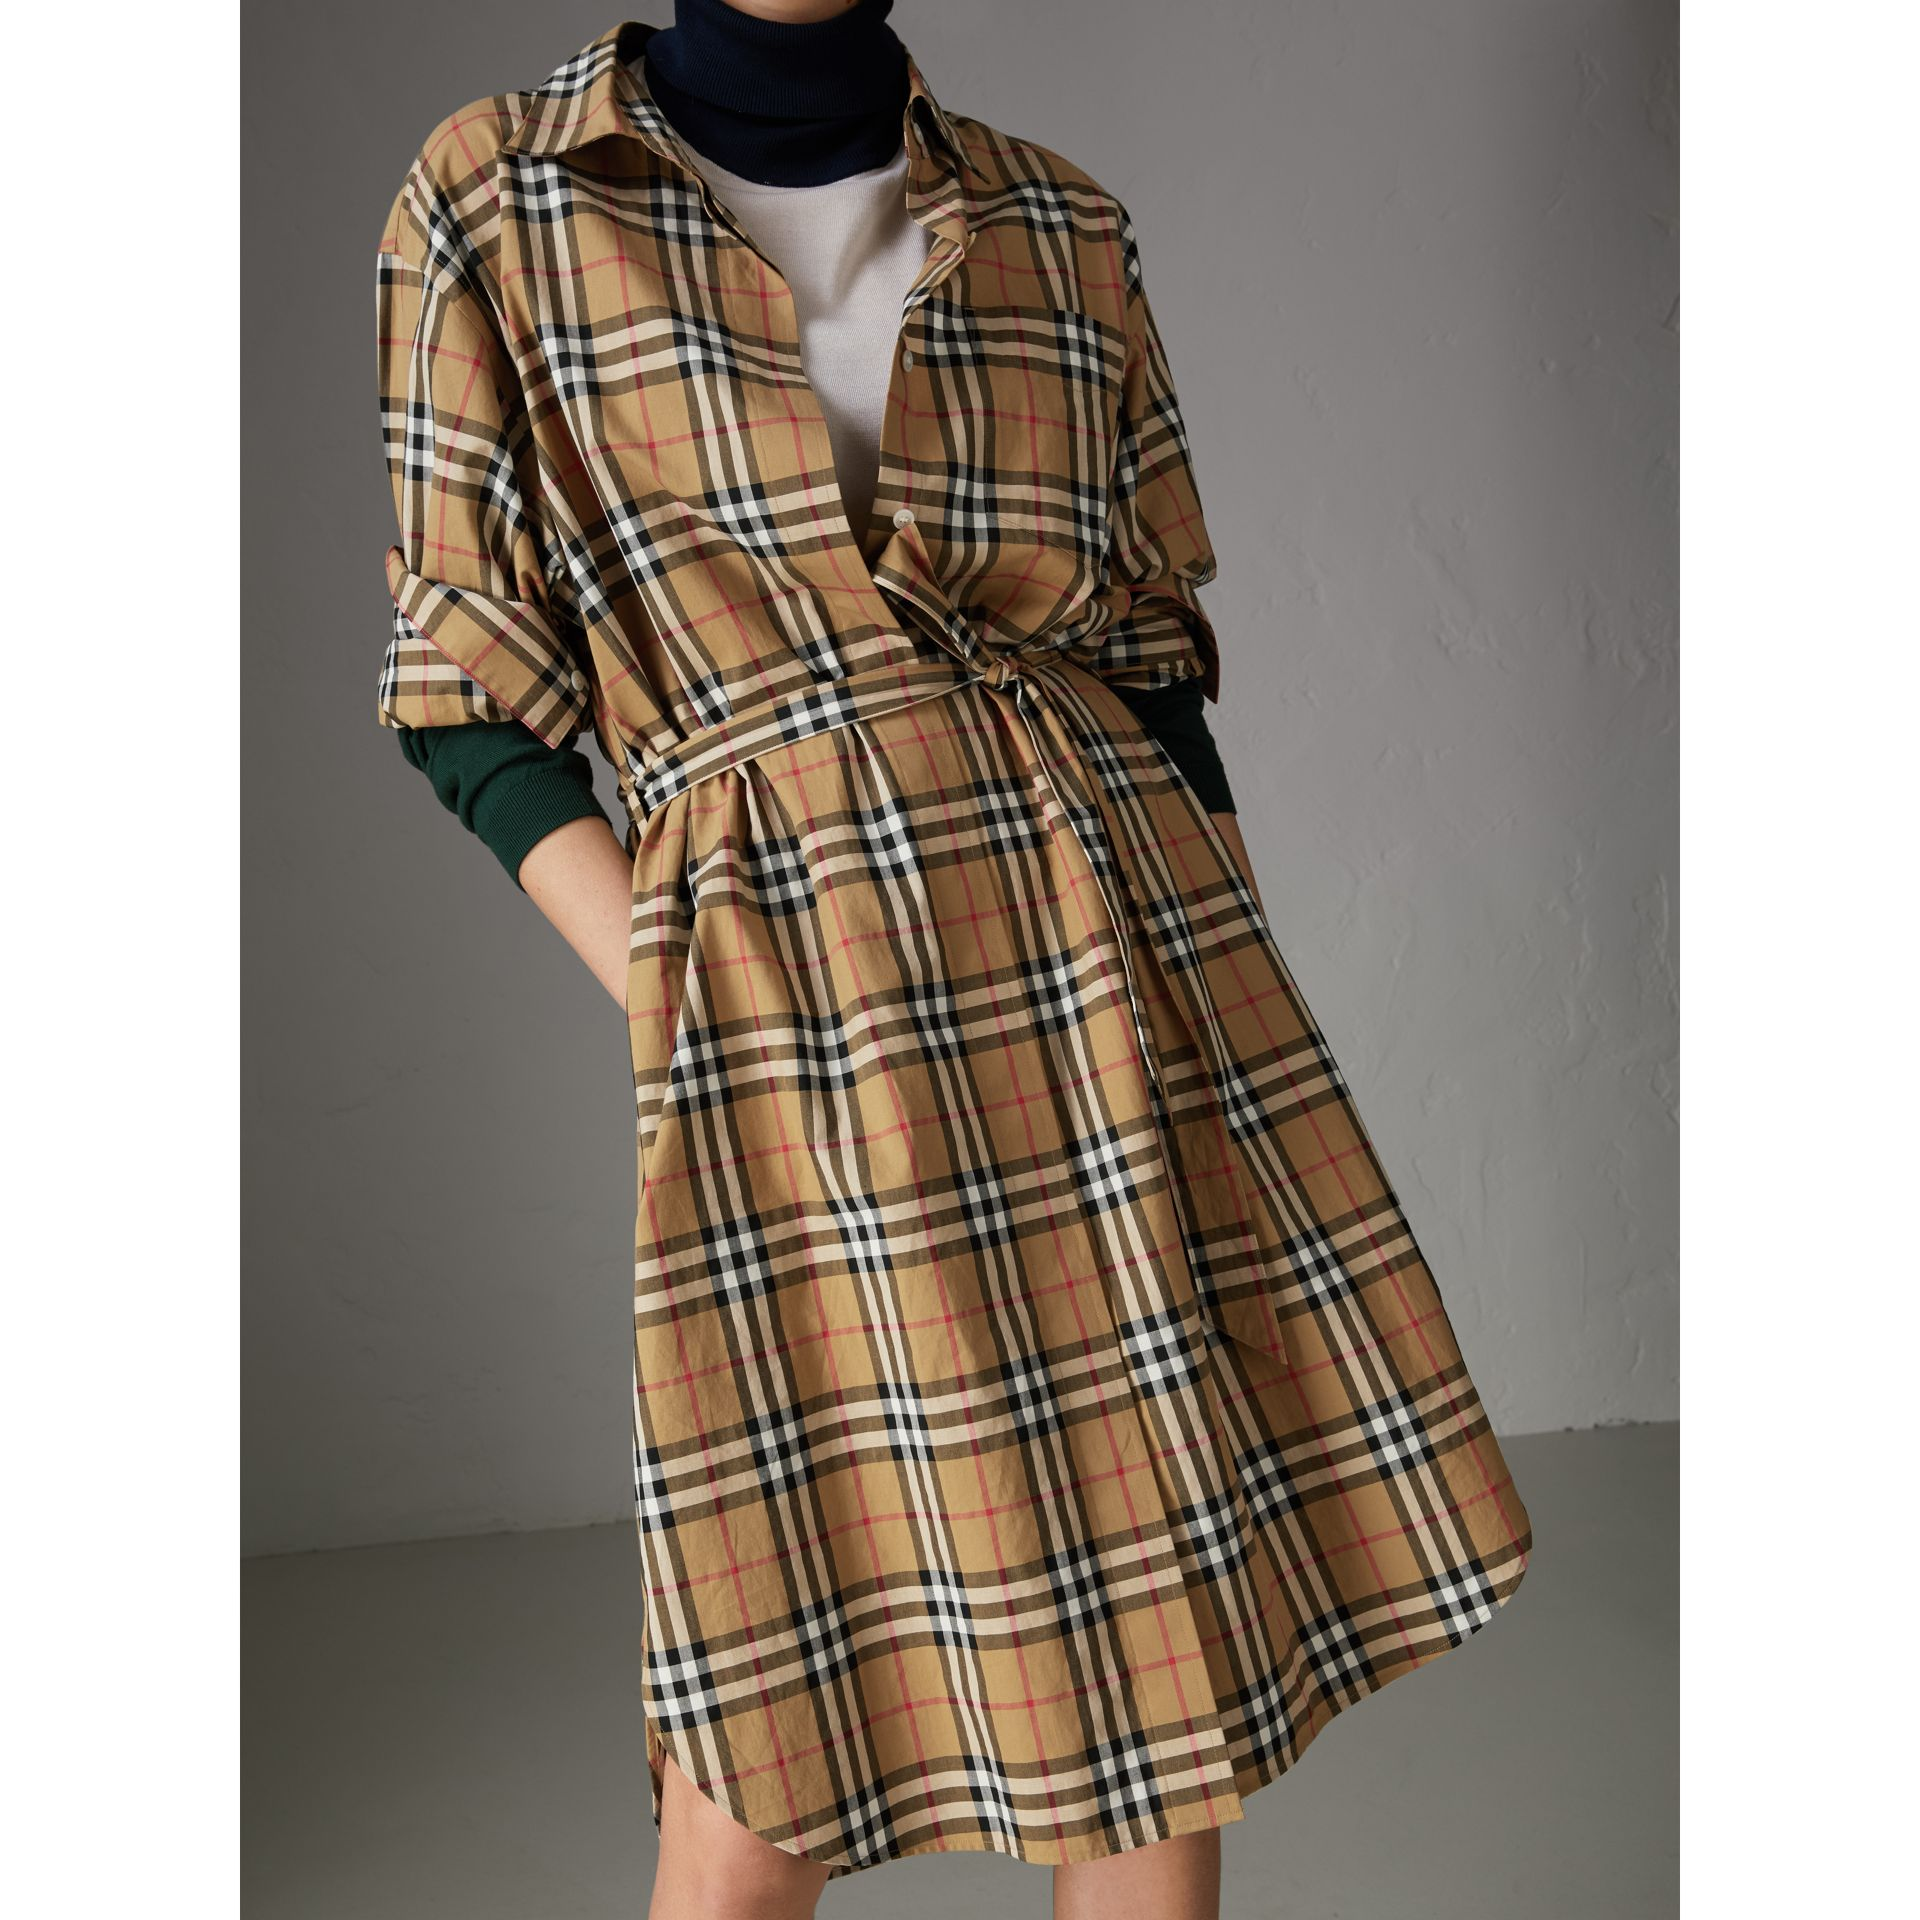 Tie-waist Vintage Check Cotton Shirt Dress in Antique Yellow - Women | Burberry - gallery image 1